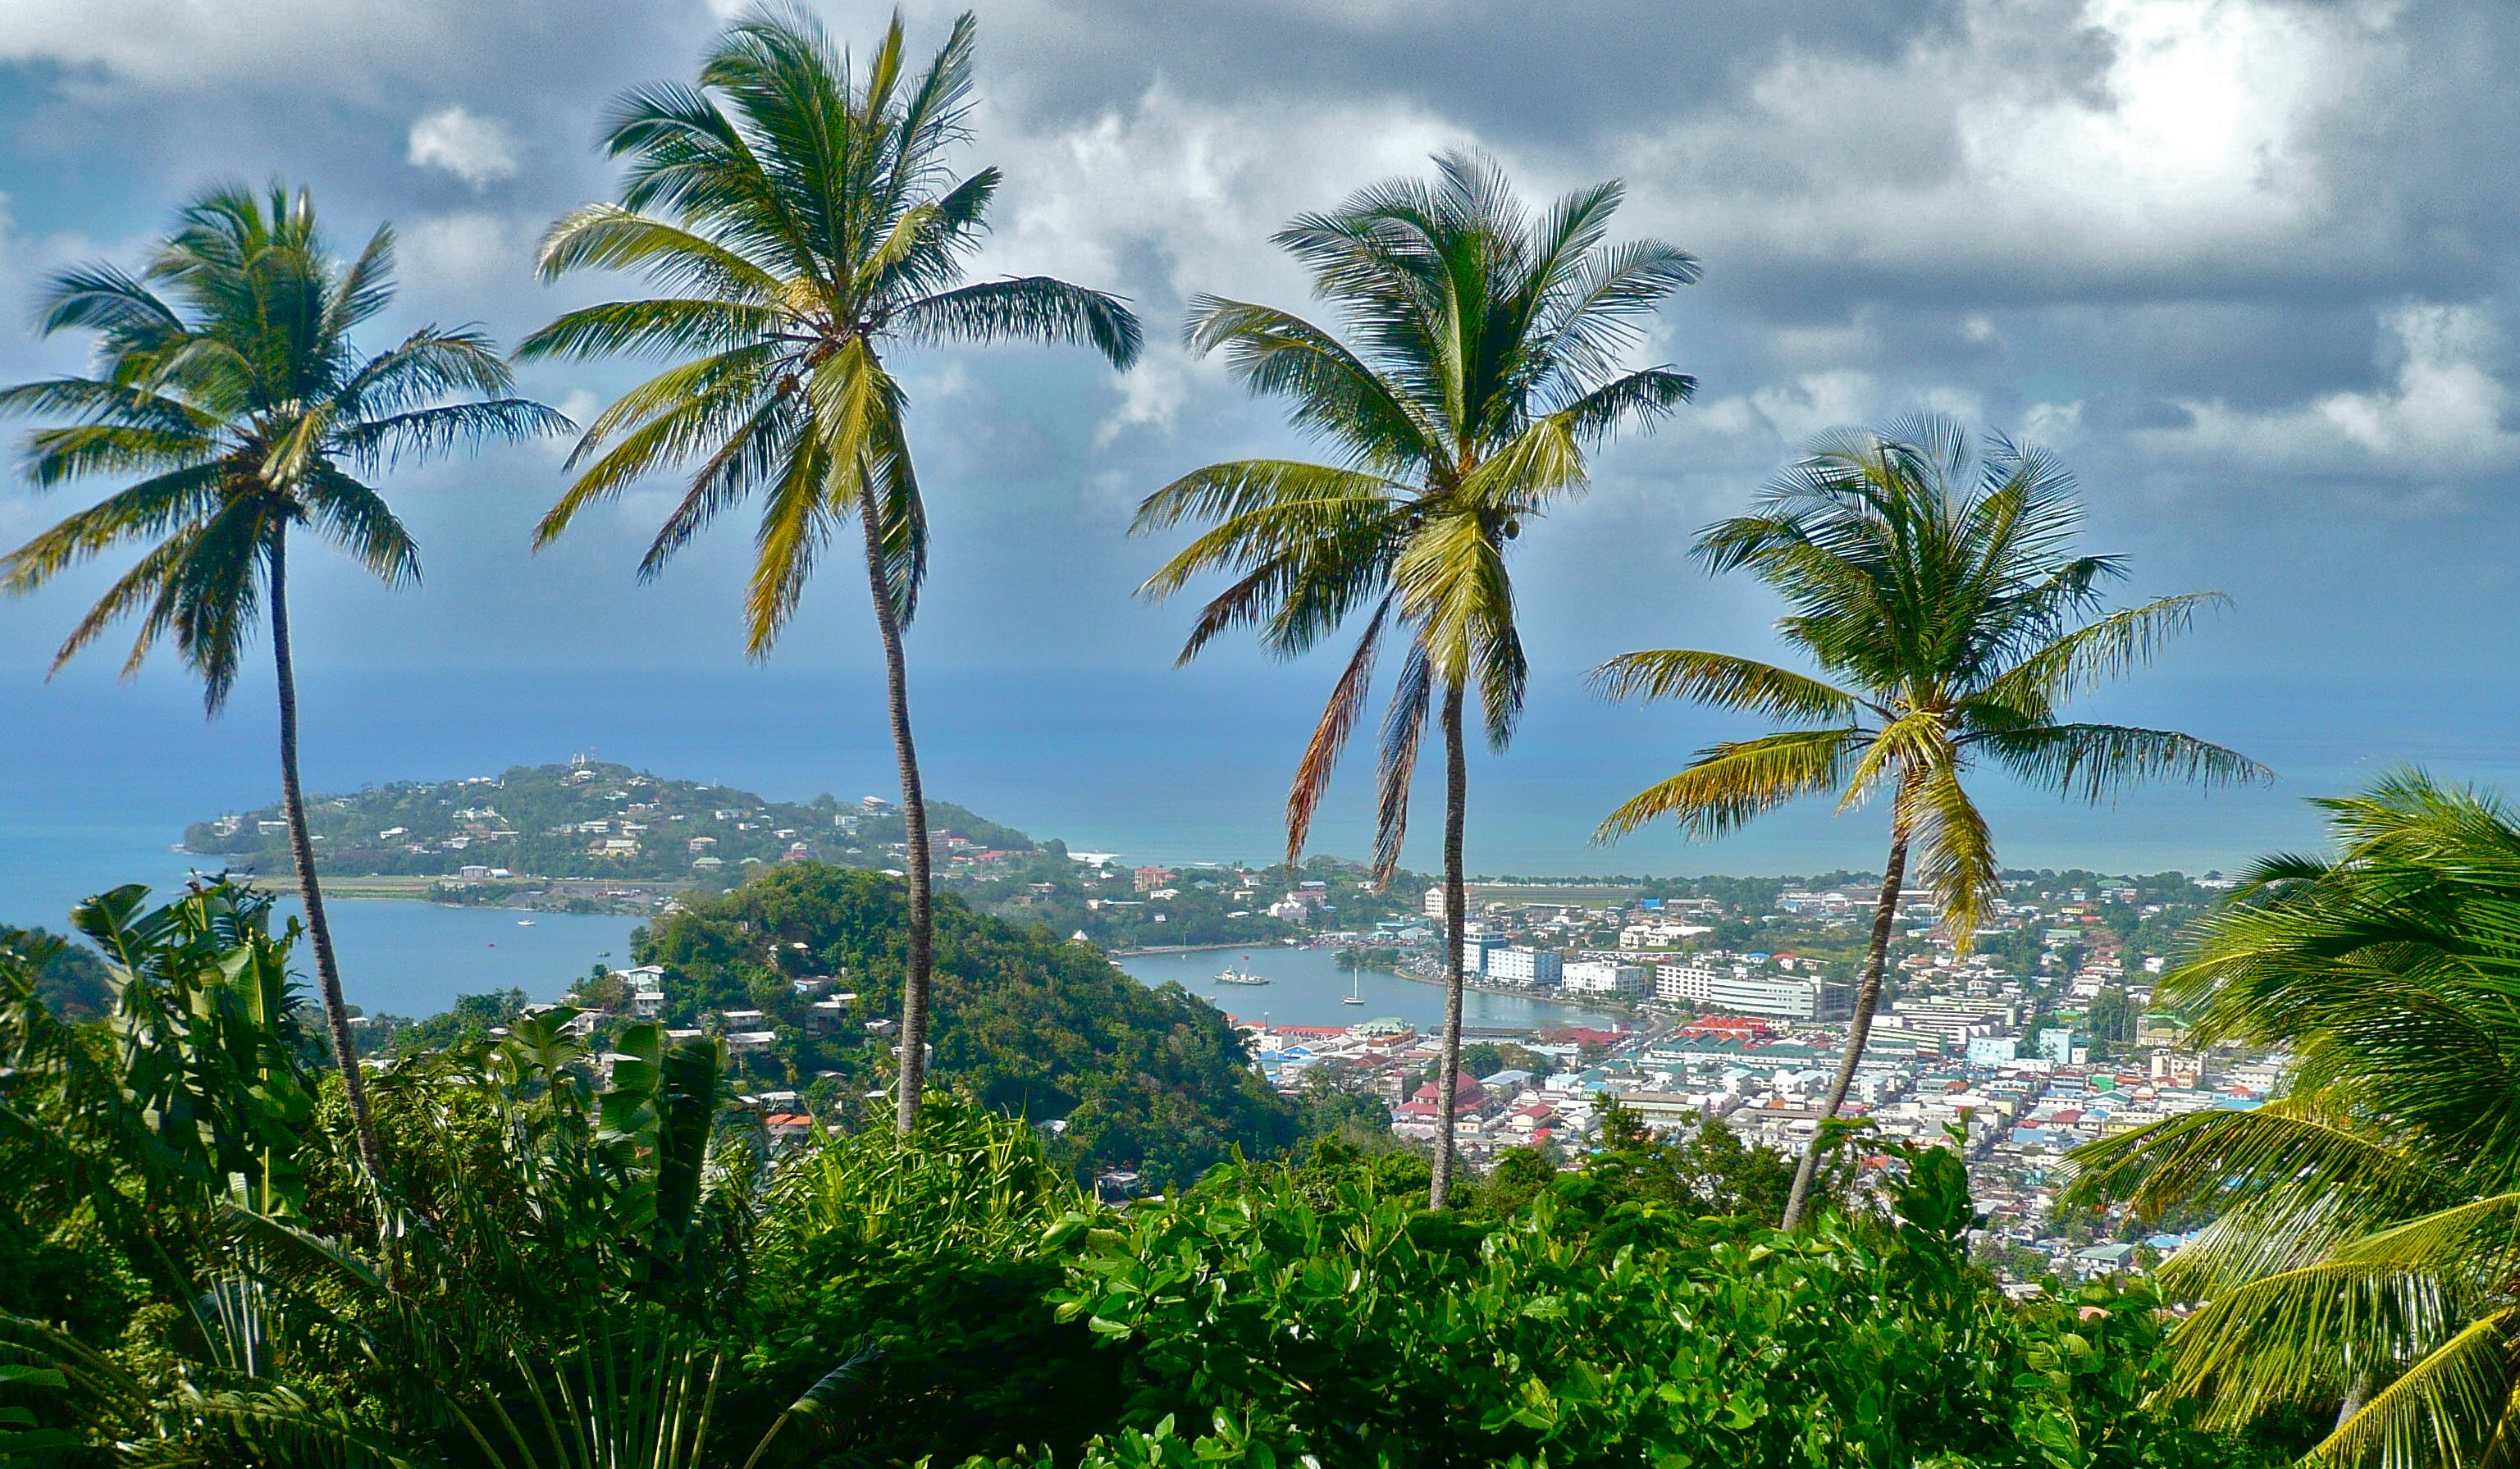 Explore old port capital - Castries